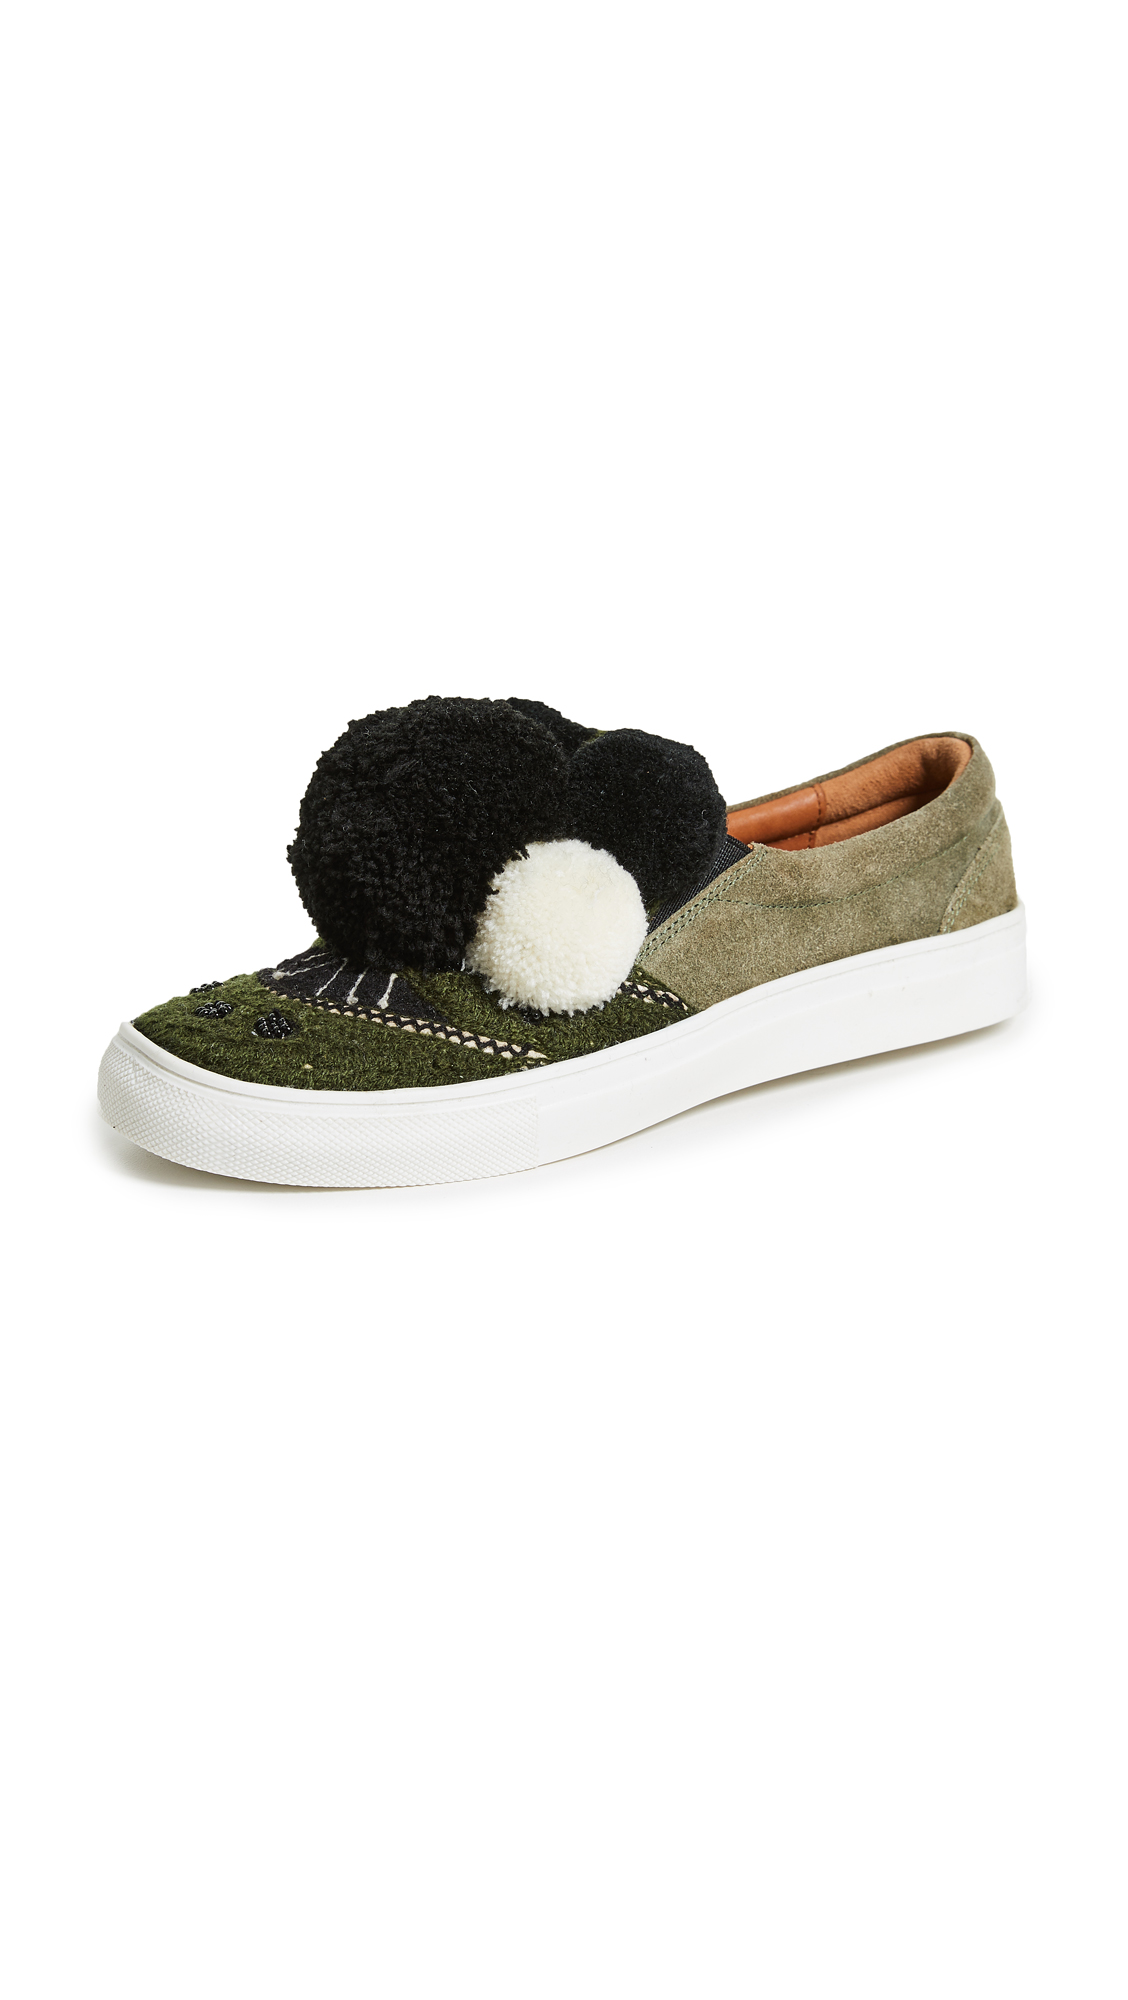 Figue Karita Slip On Sneakers - Cactus Green